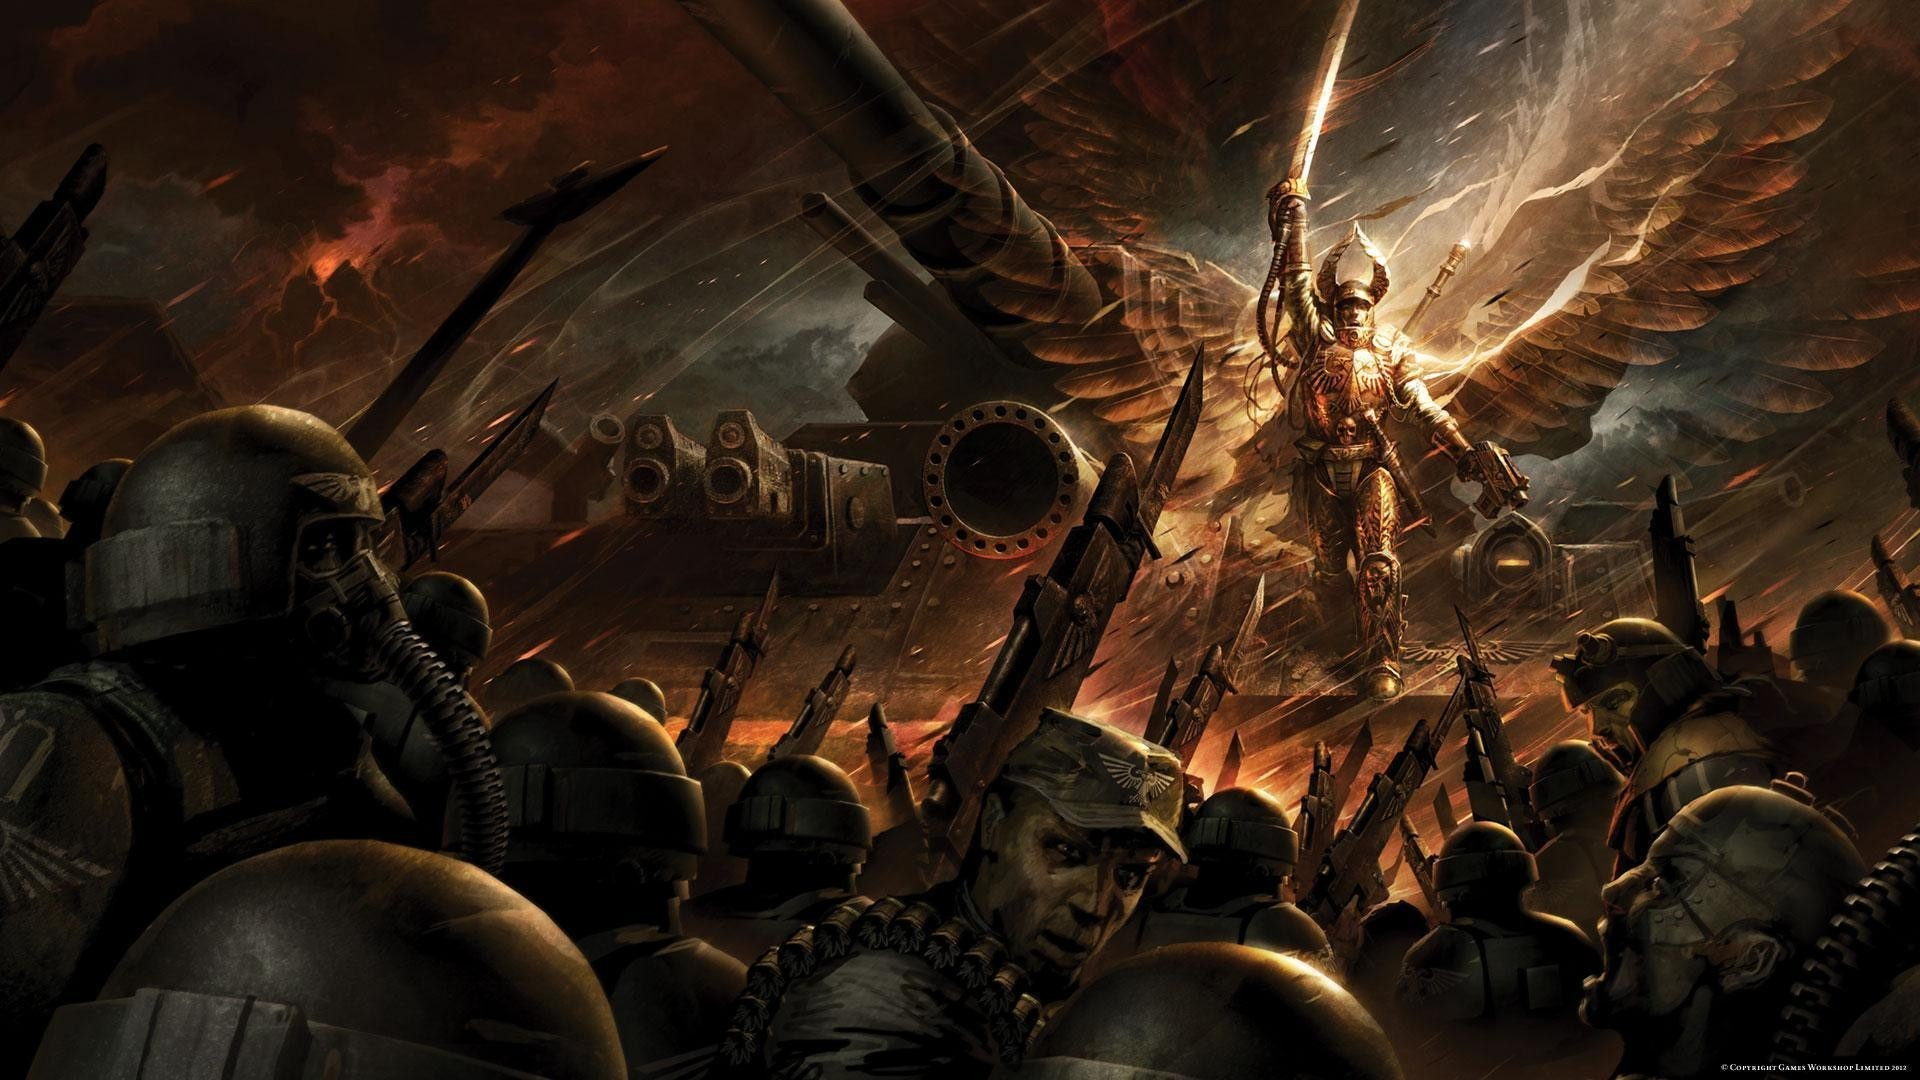 Explore Warhammer 40000, Solar, and more! Imperial Guard wallpaper